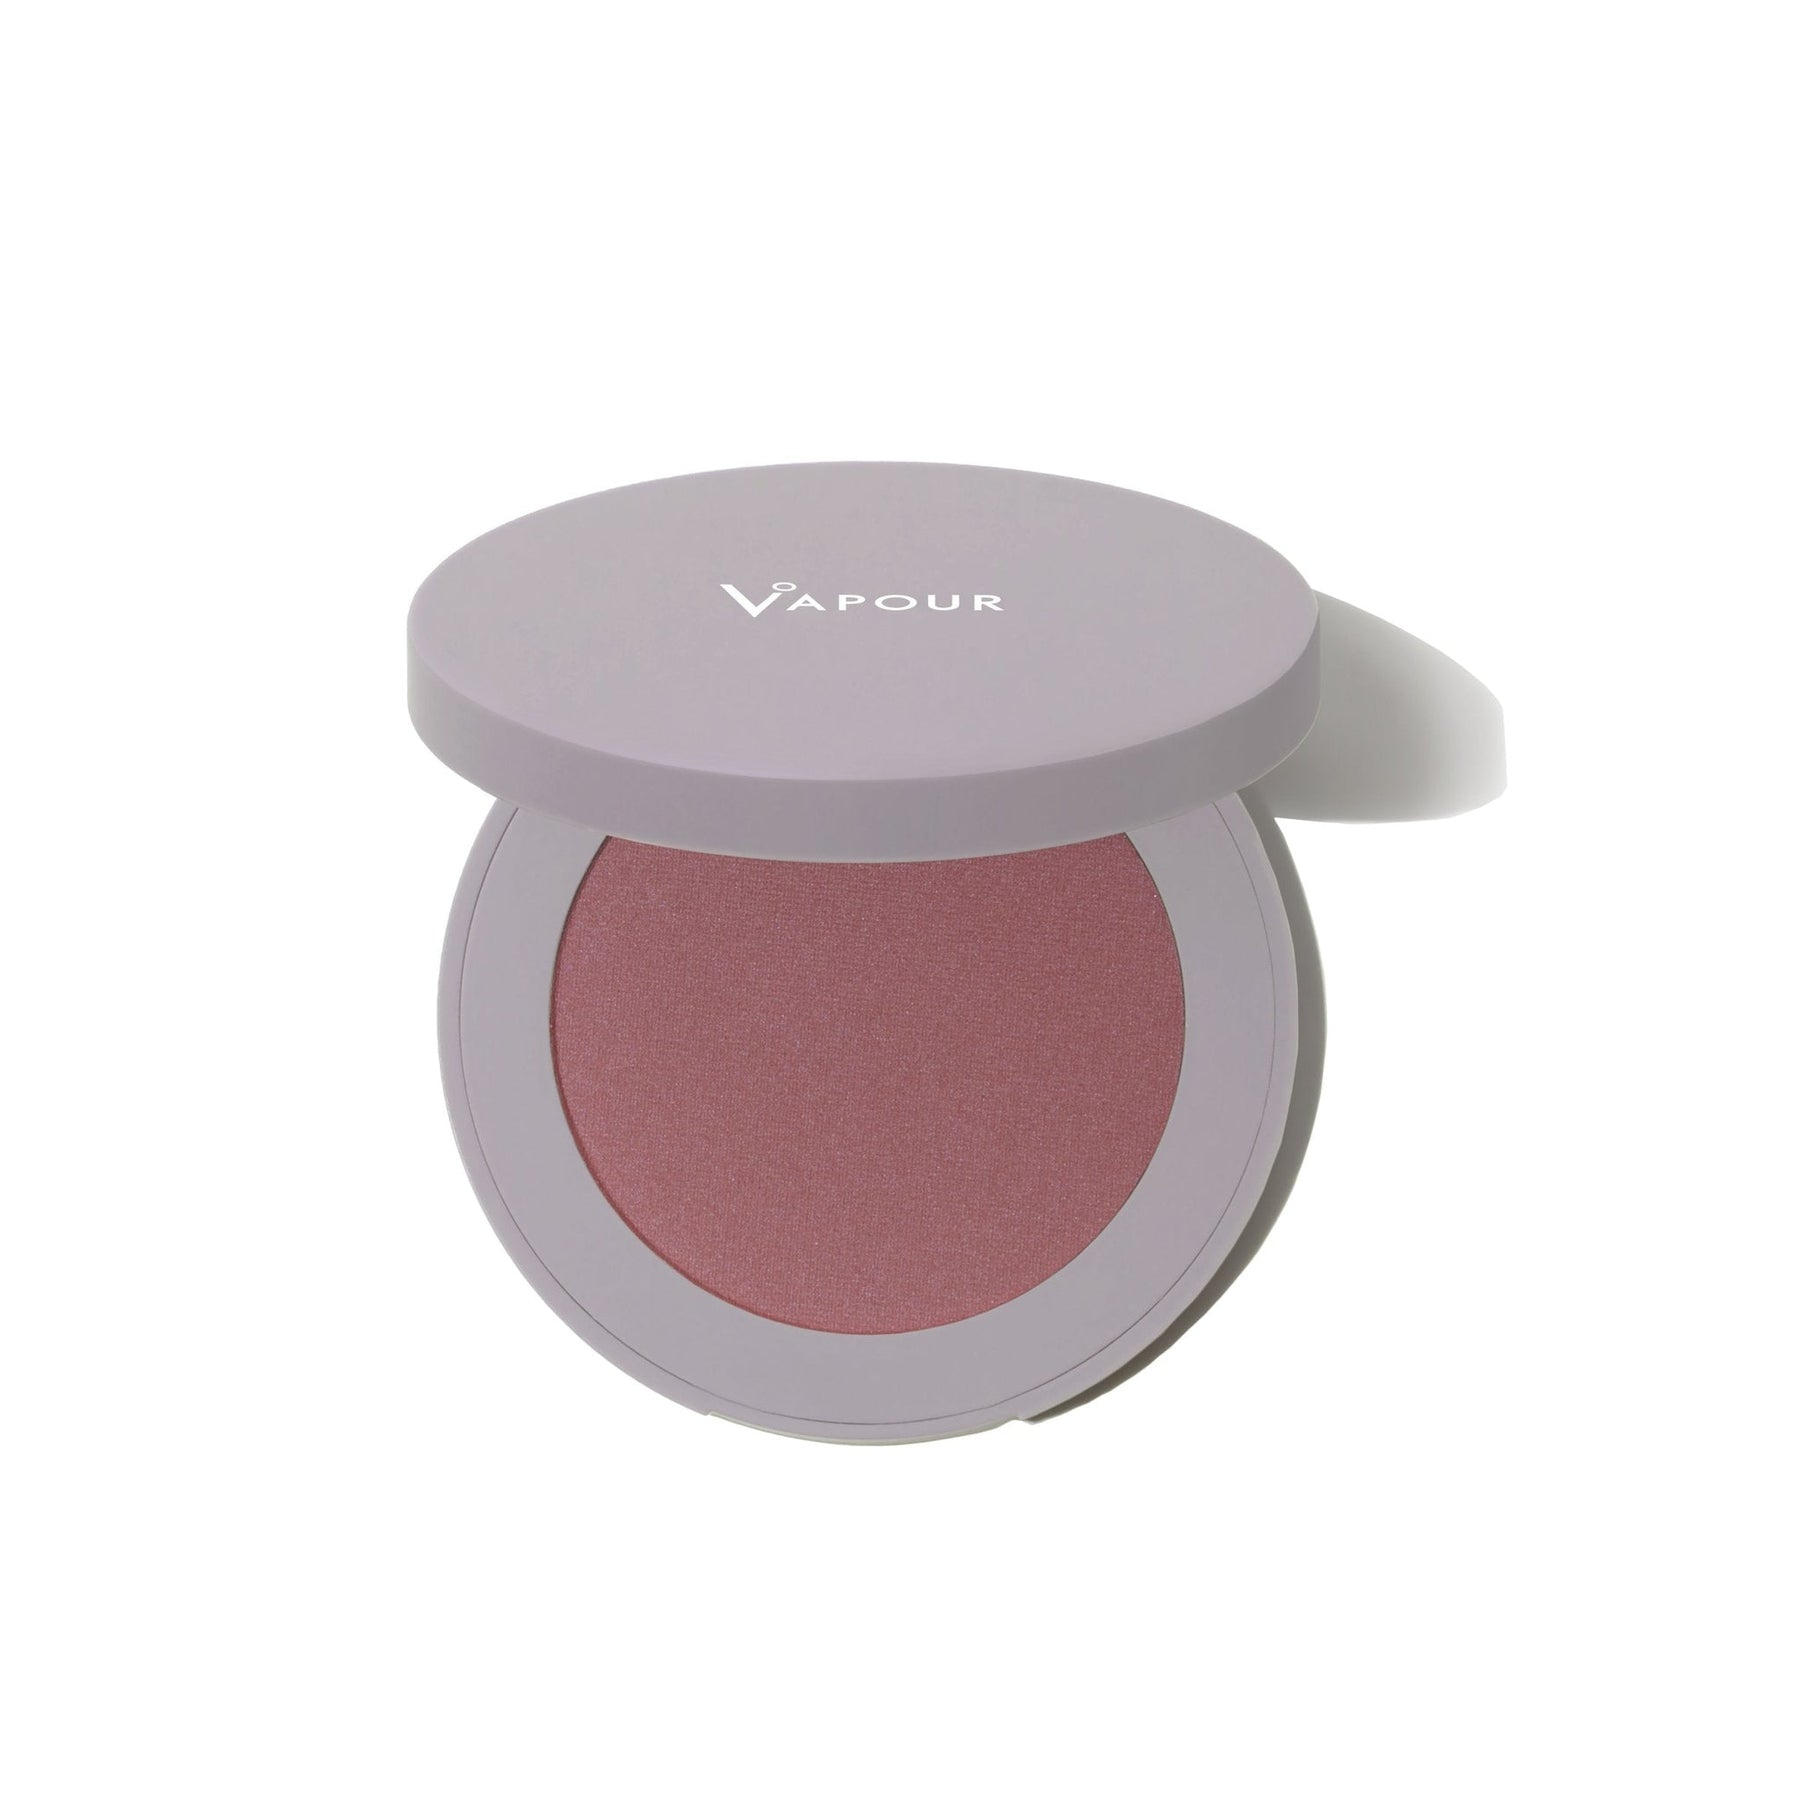 Vapour - Blush Powder Obsess